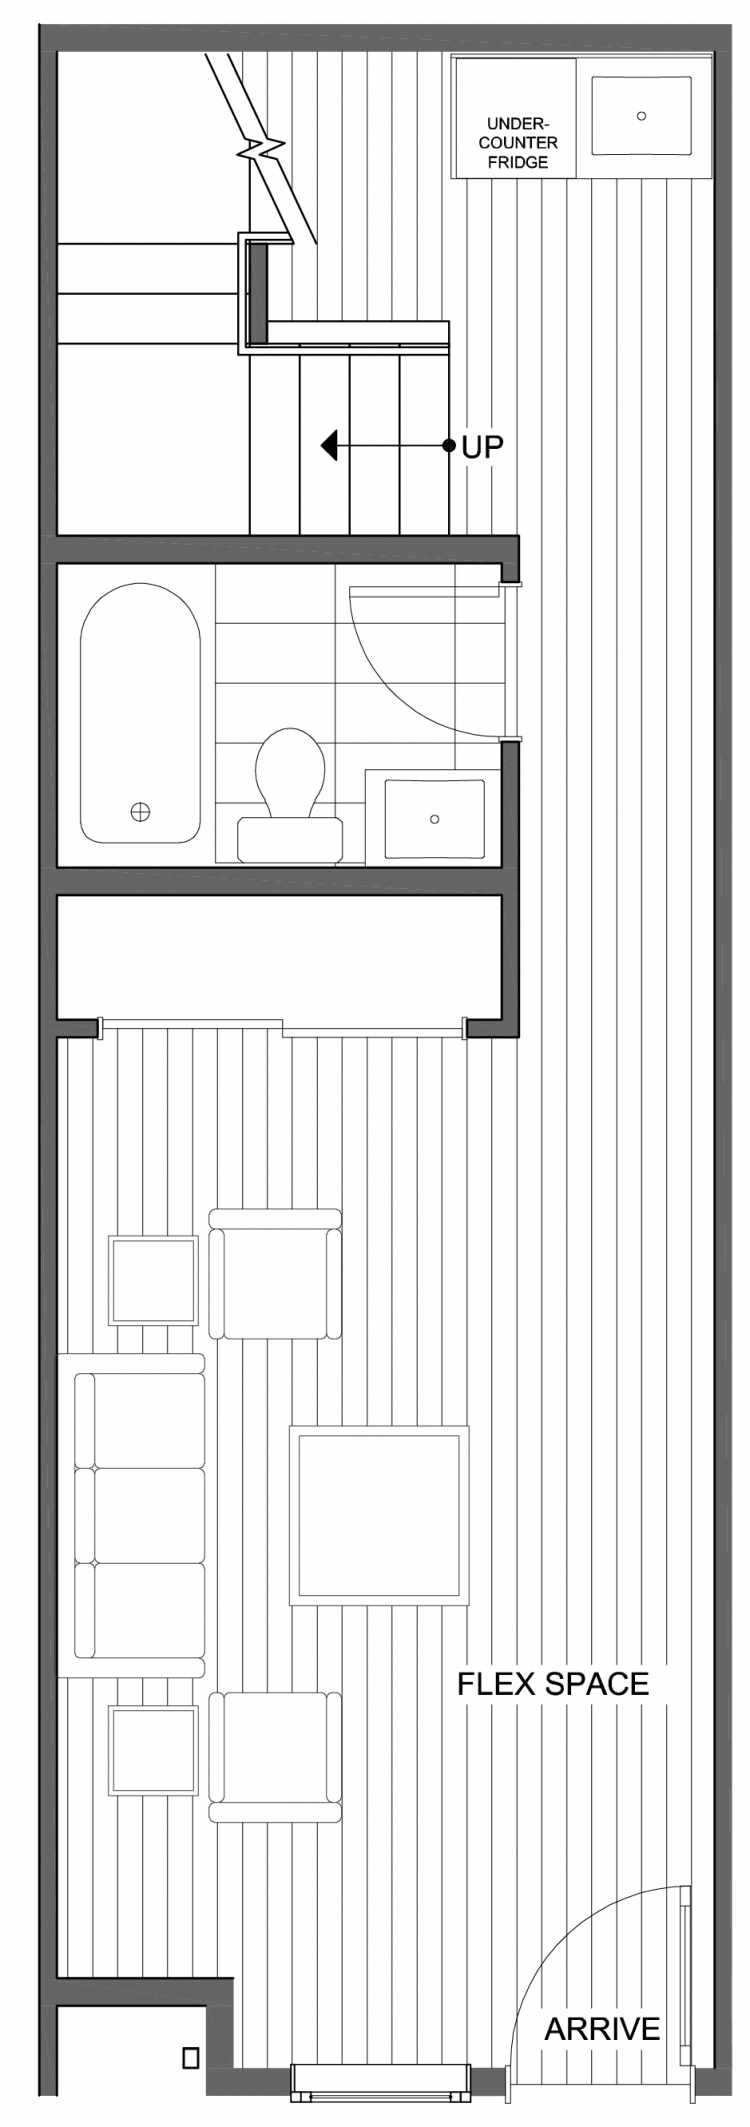 First Floor Plan of 806A N 46th St, One of the Nino 15 East Townhomes by Isola Homes